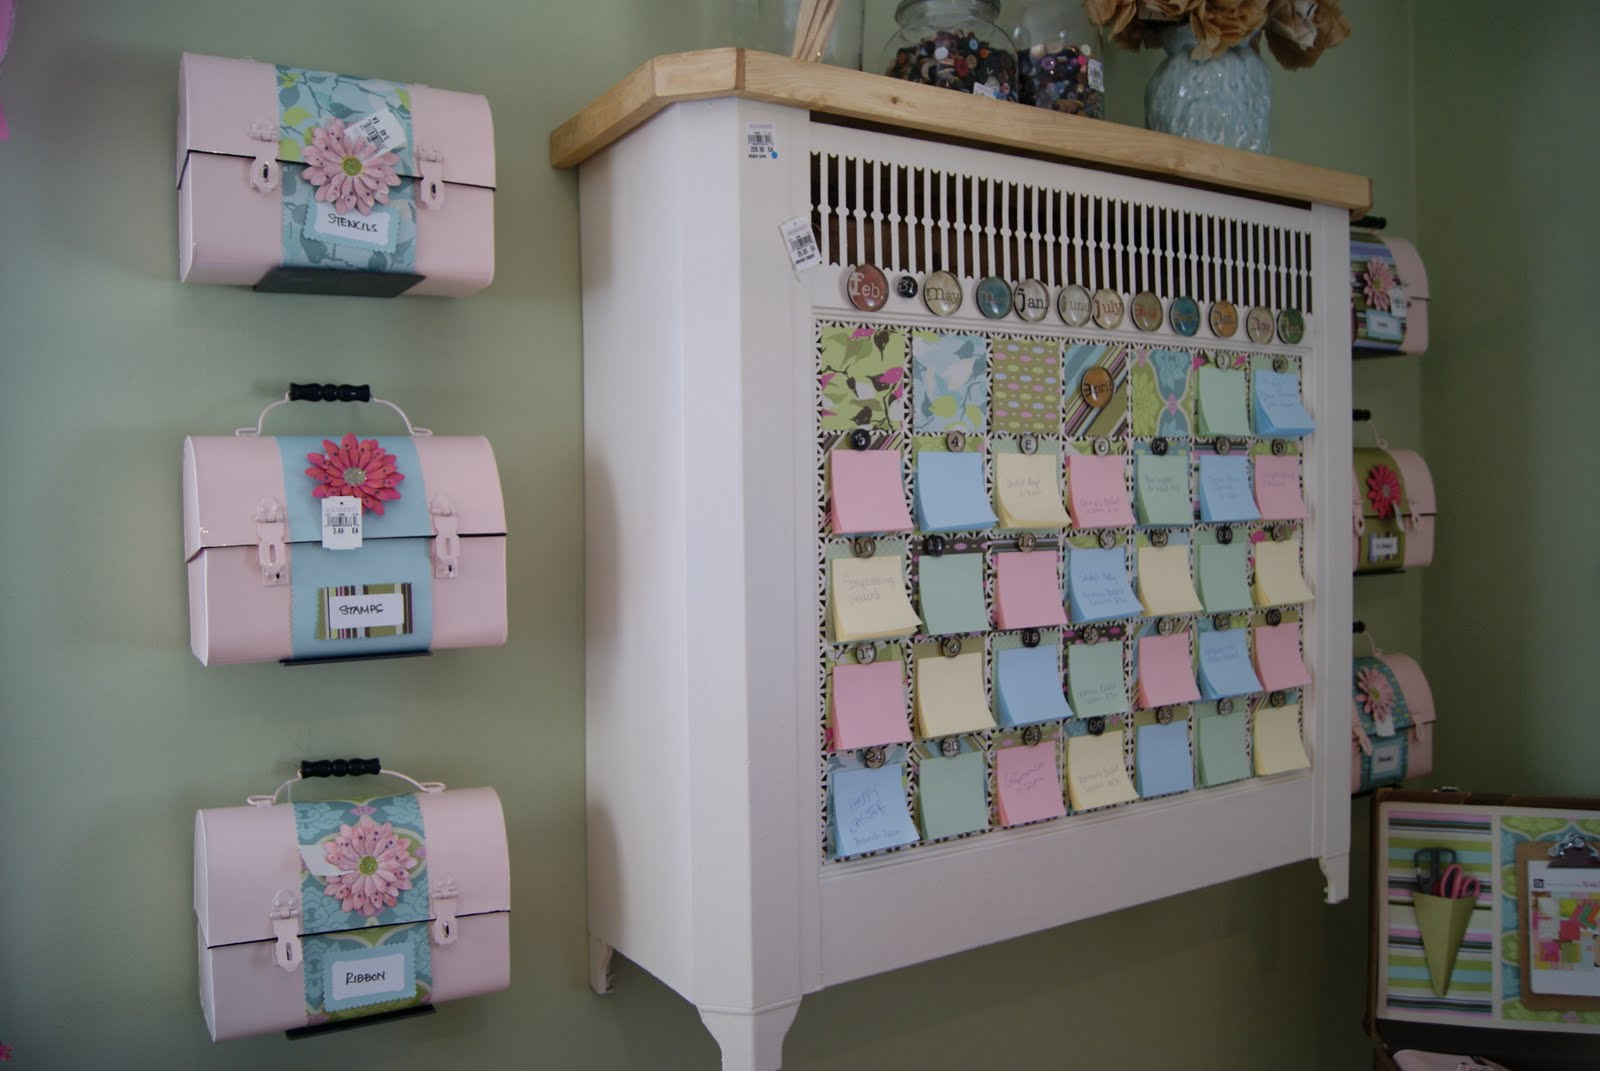 images of lunch boxes used as storage containers radiator cover turned into wallpaper